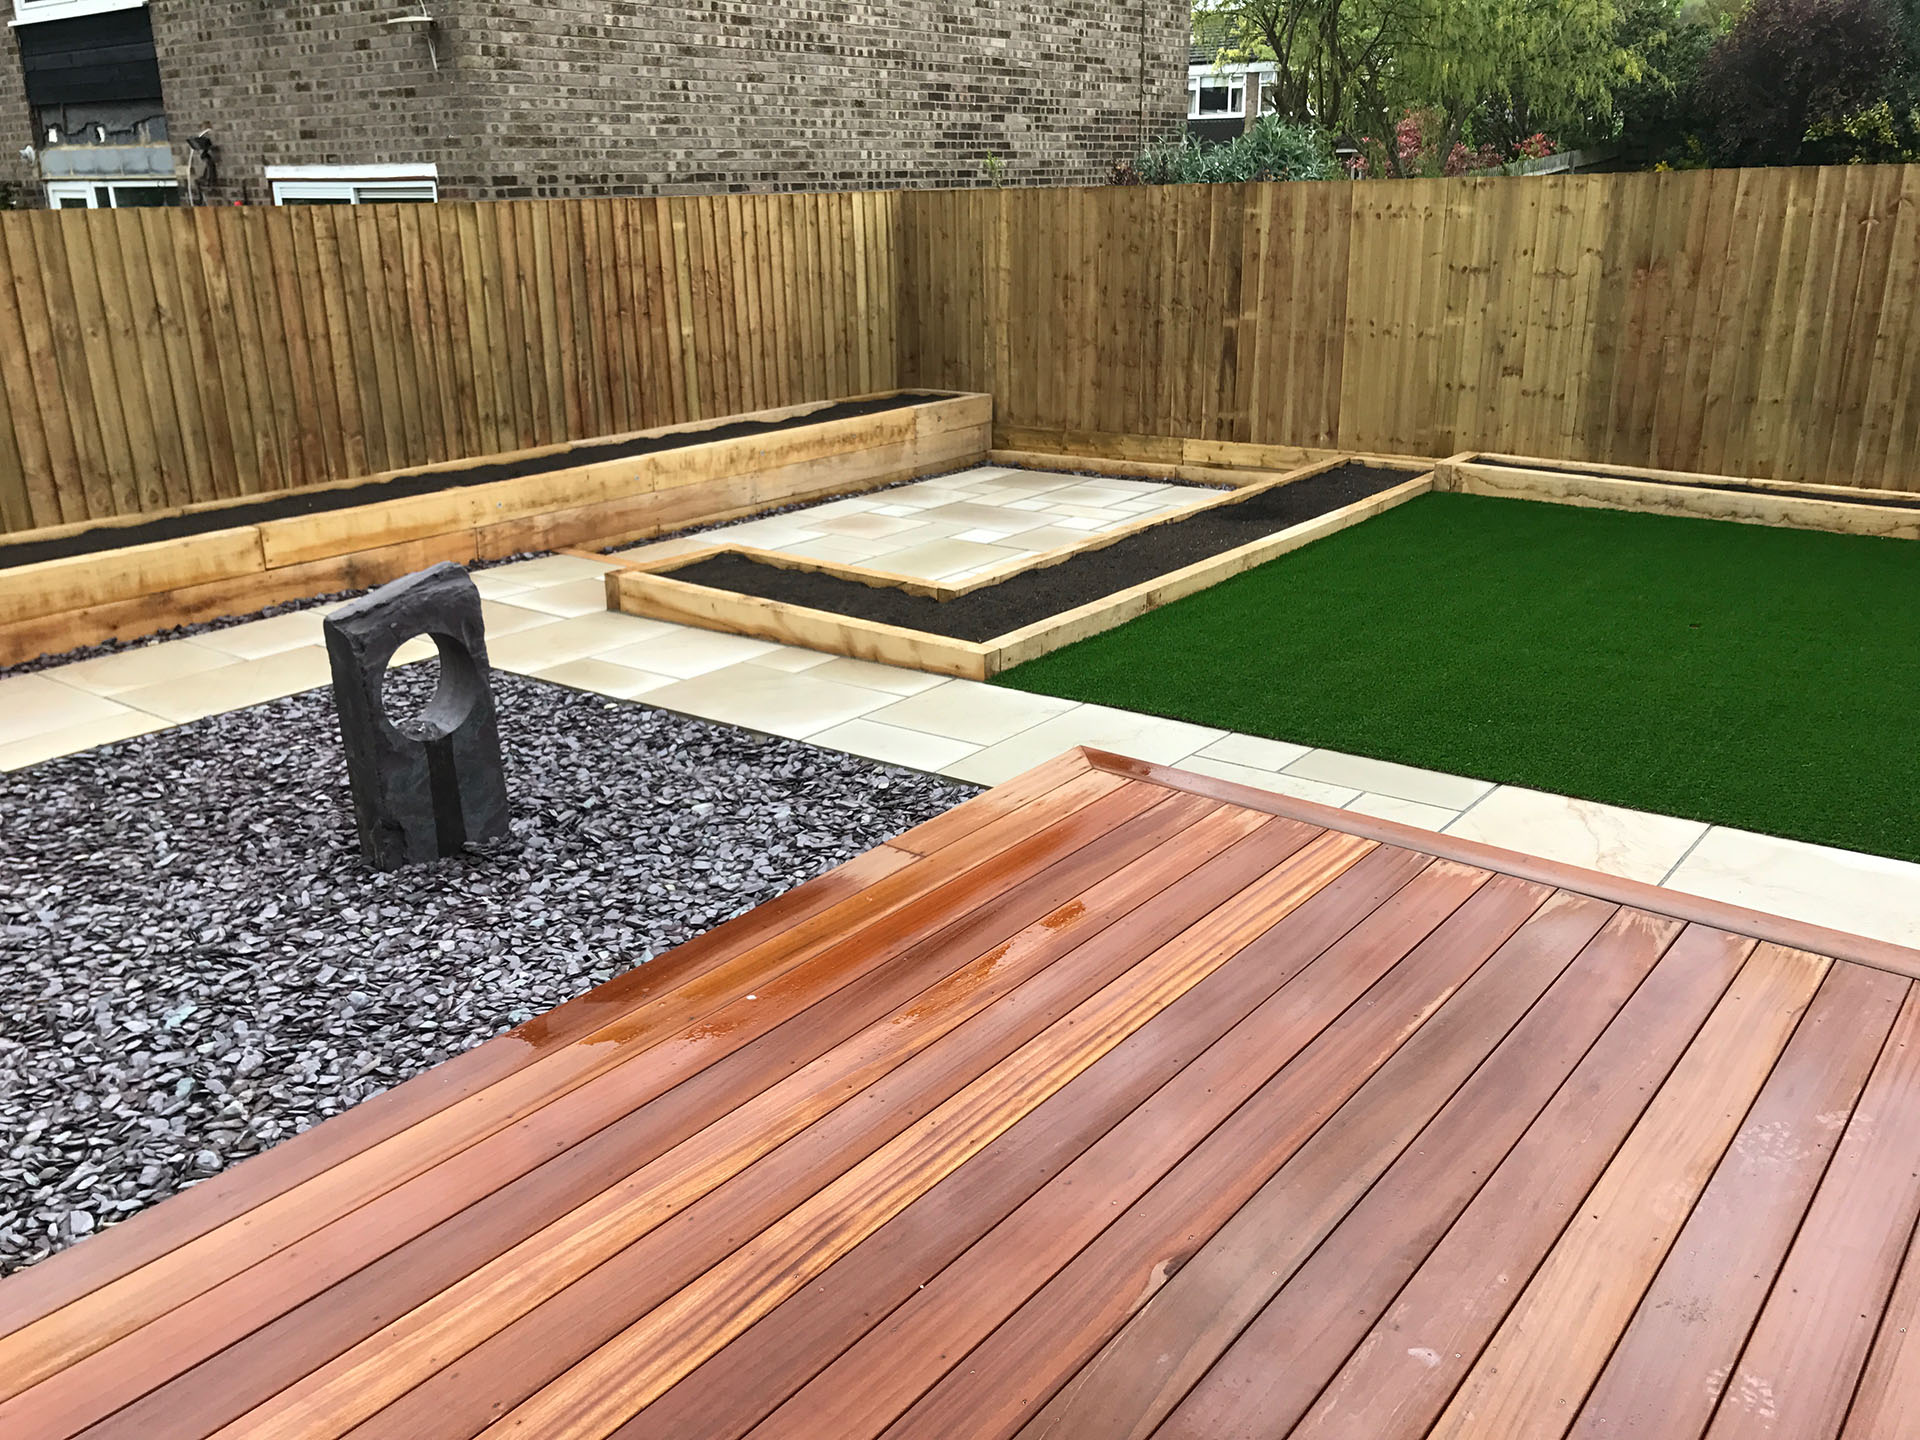 Hardwood-decking-water-feature-raised-beds-and-paving